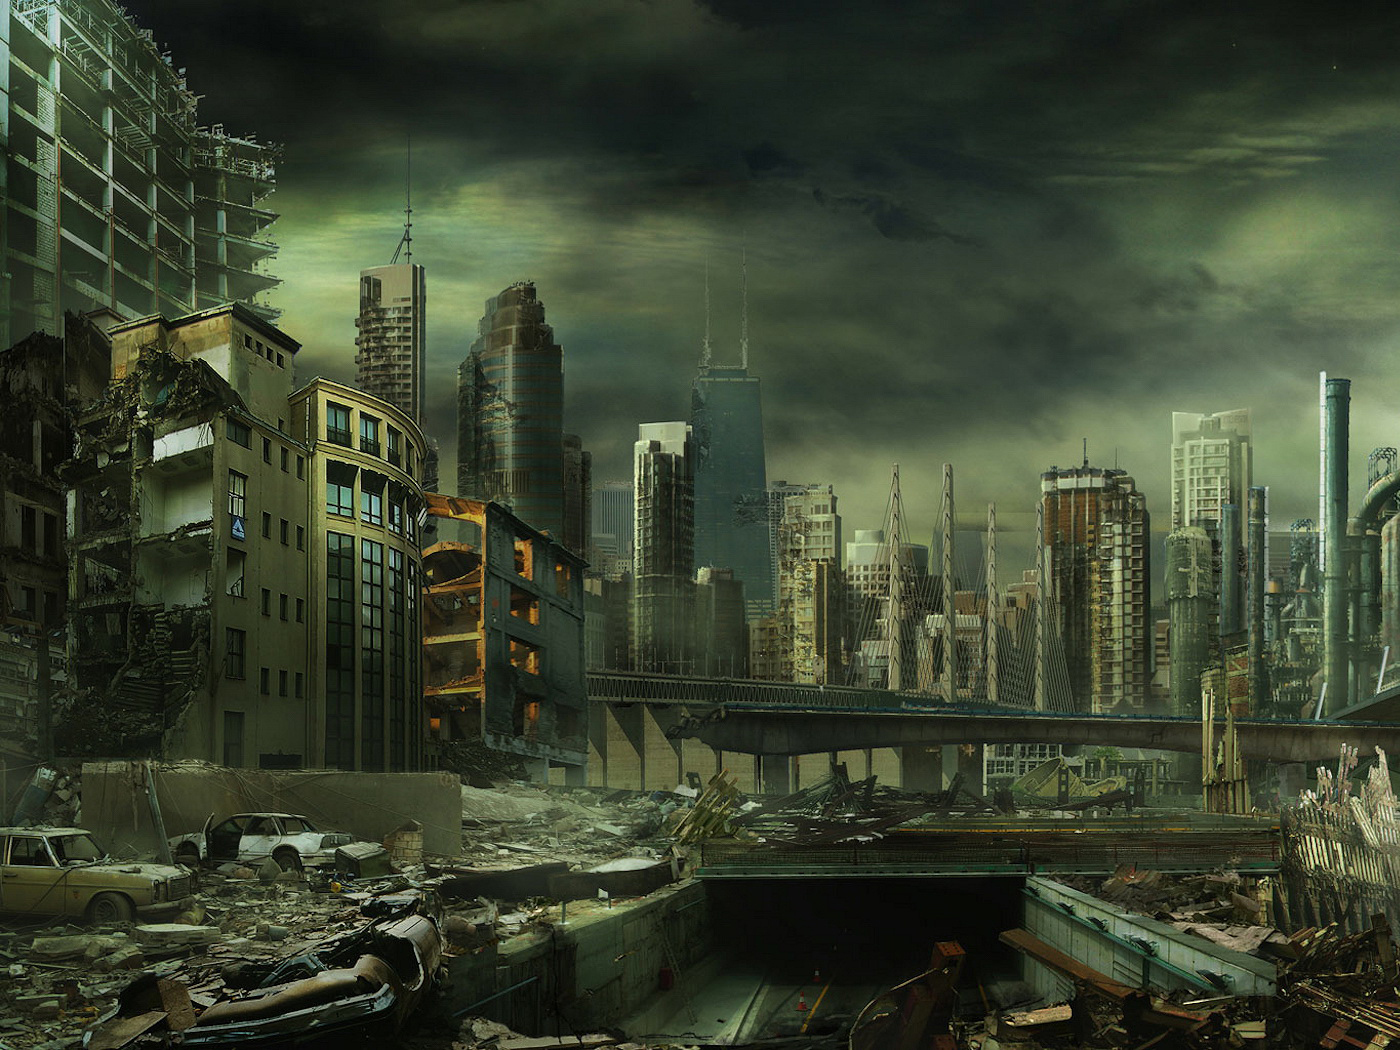 ruins buildings Apocalypse cityscapes